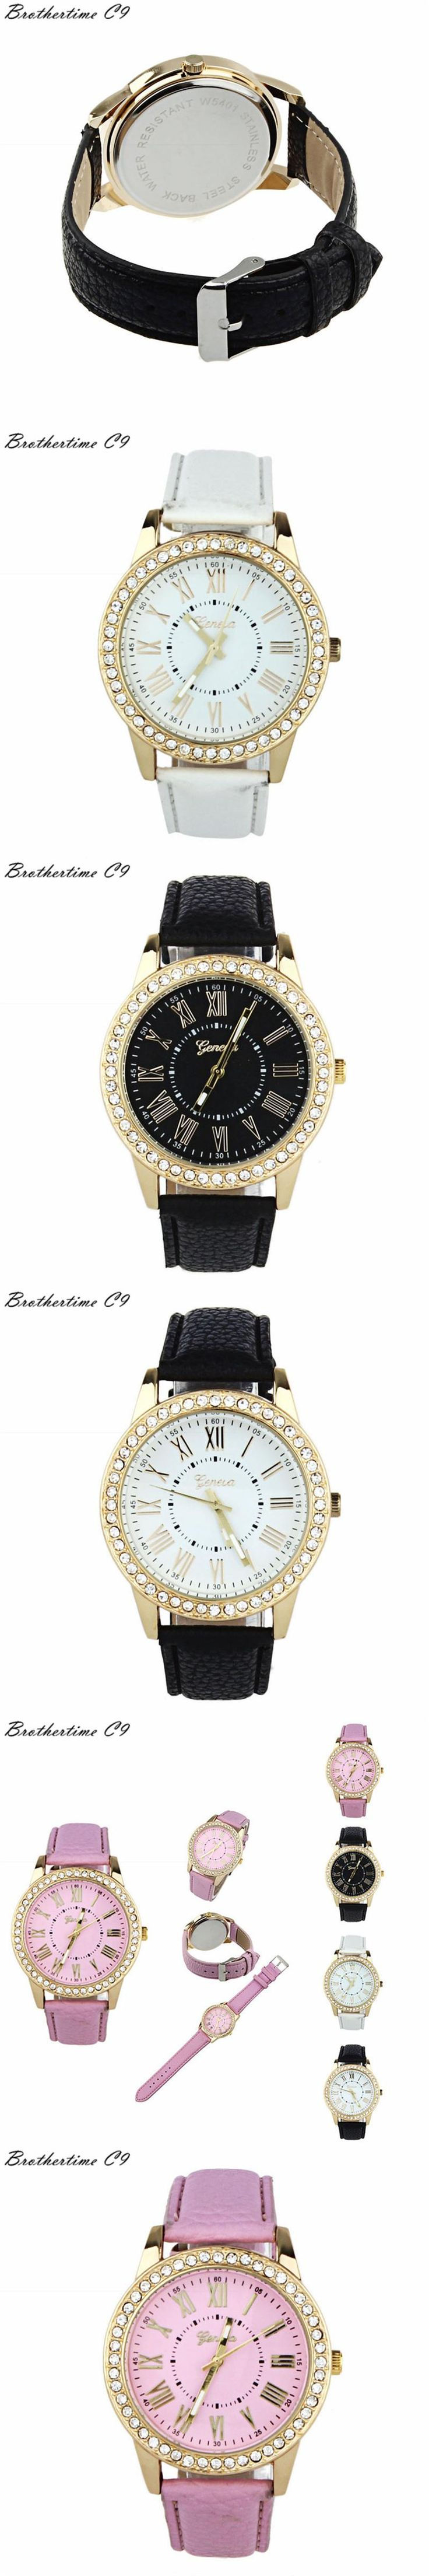 crystal leather charm bow strap ladies watch chain bracelet wrist itm watches women quartz